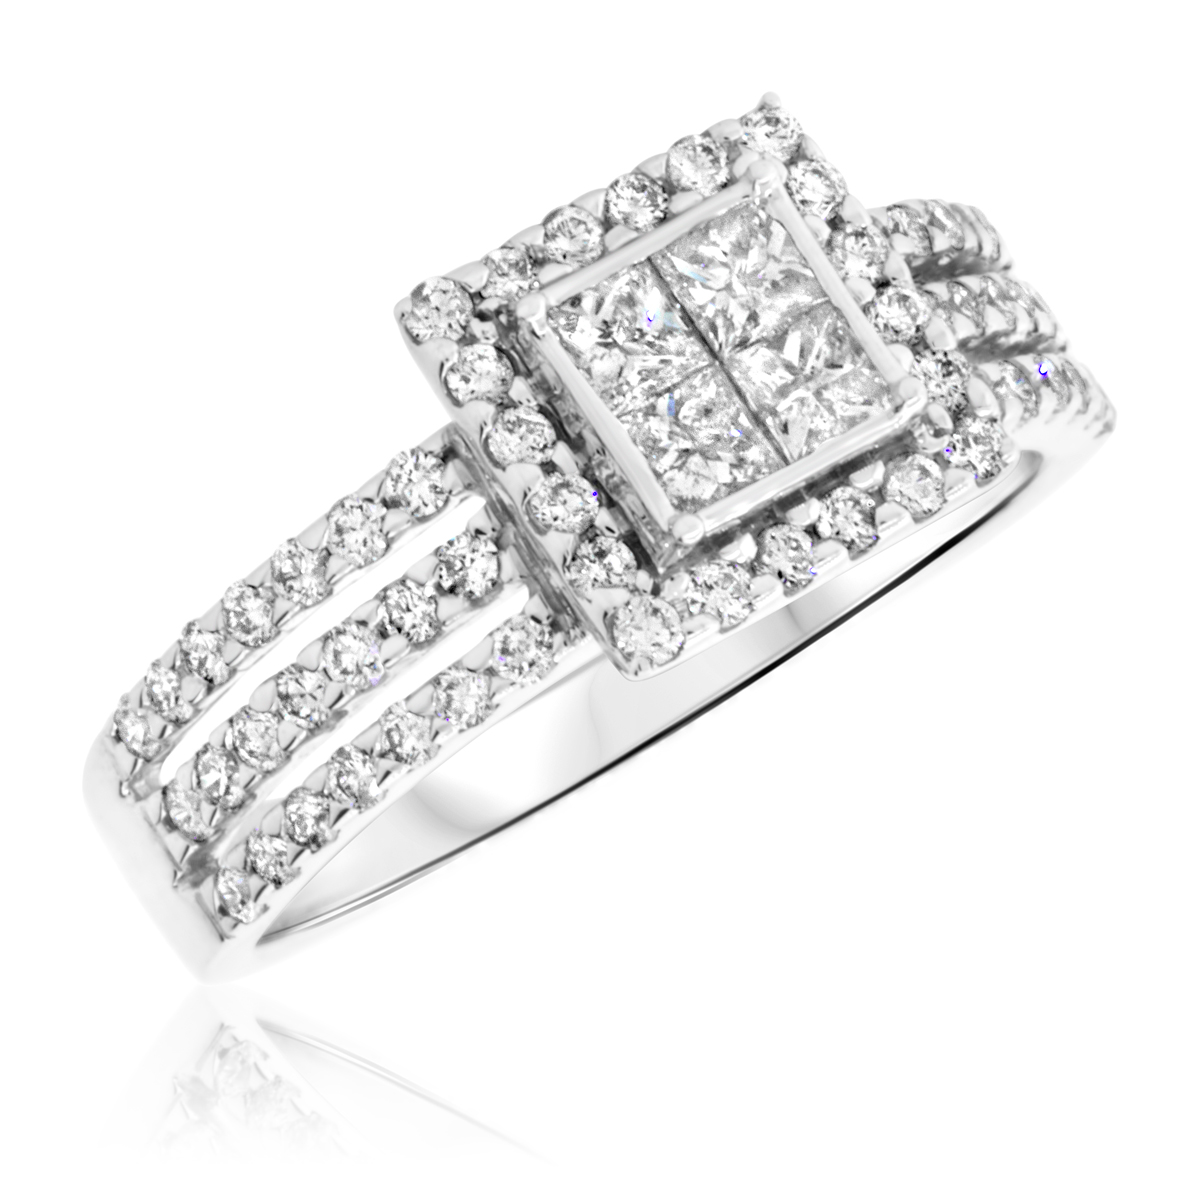 1 Carat T.W. Princess, Round Cut Diamond Ladies Engagement Ring 14K White Gold